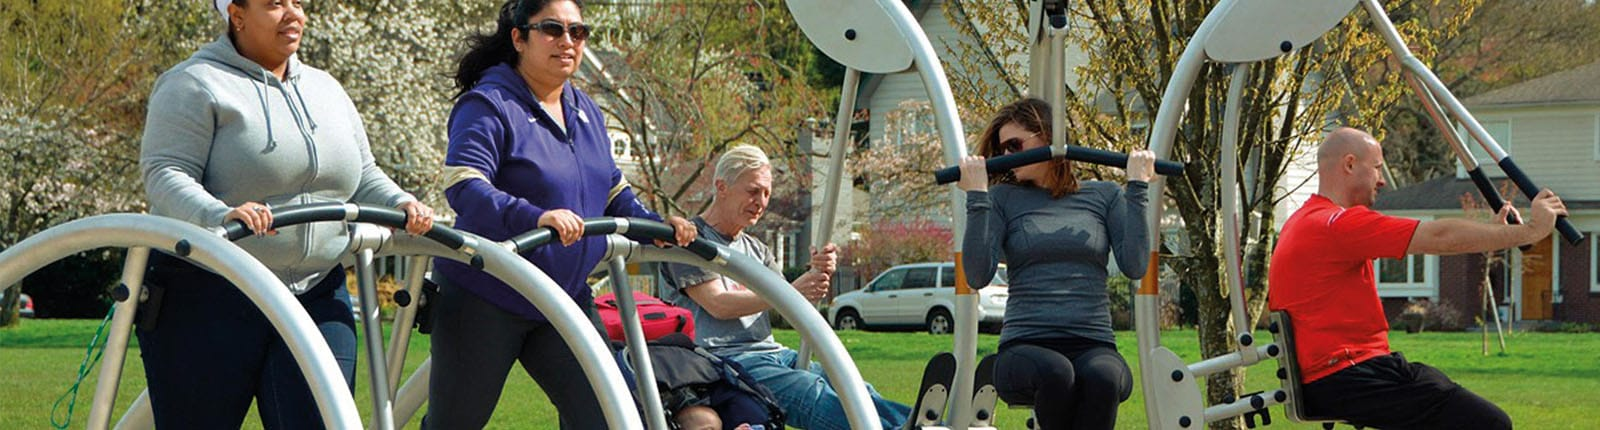 Norwell People Using Exercise Equipment | Sterling West